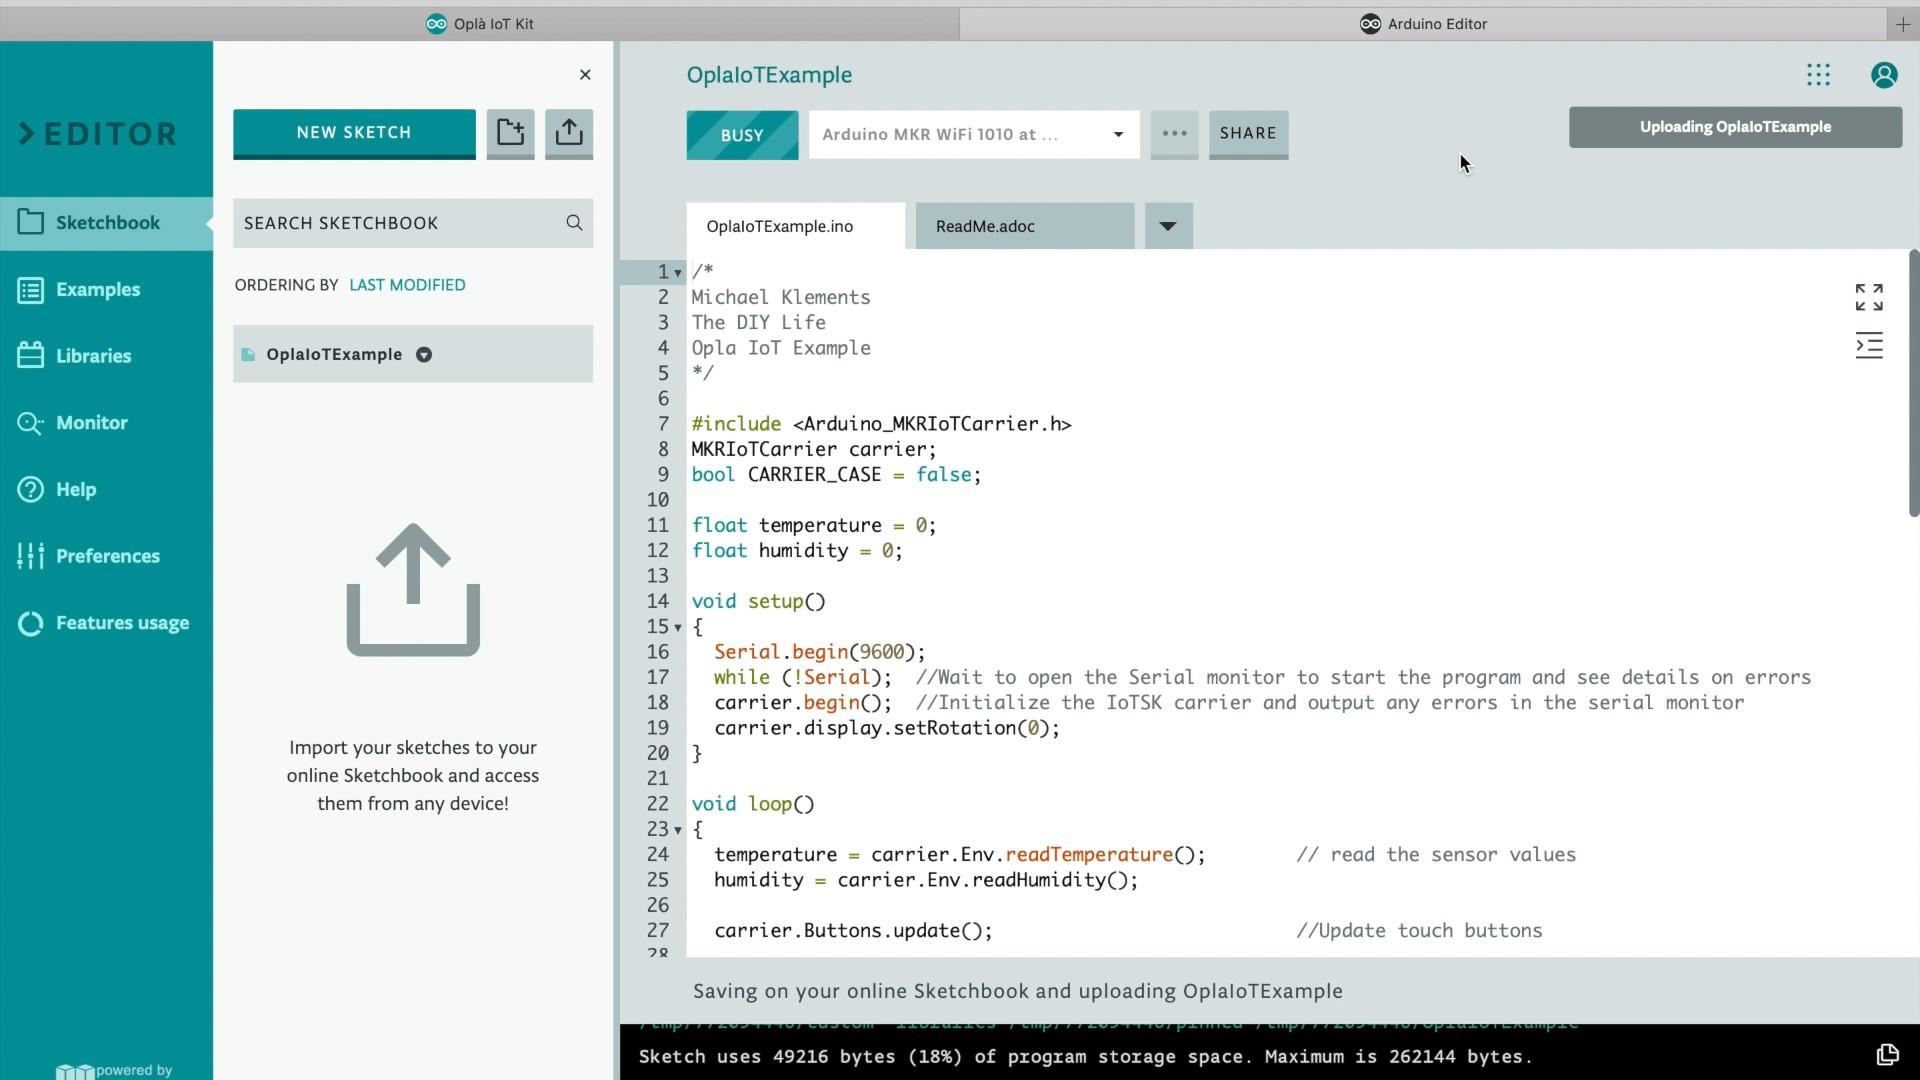 Uploading The Example Sketch To The Arduino